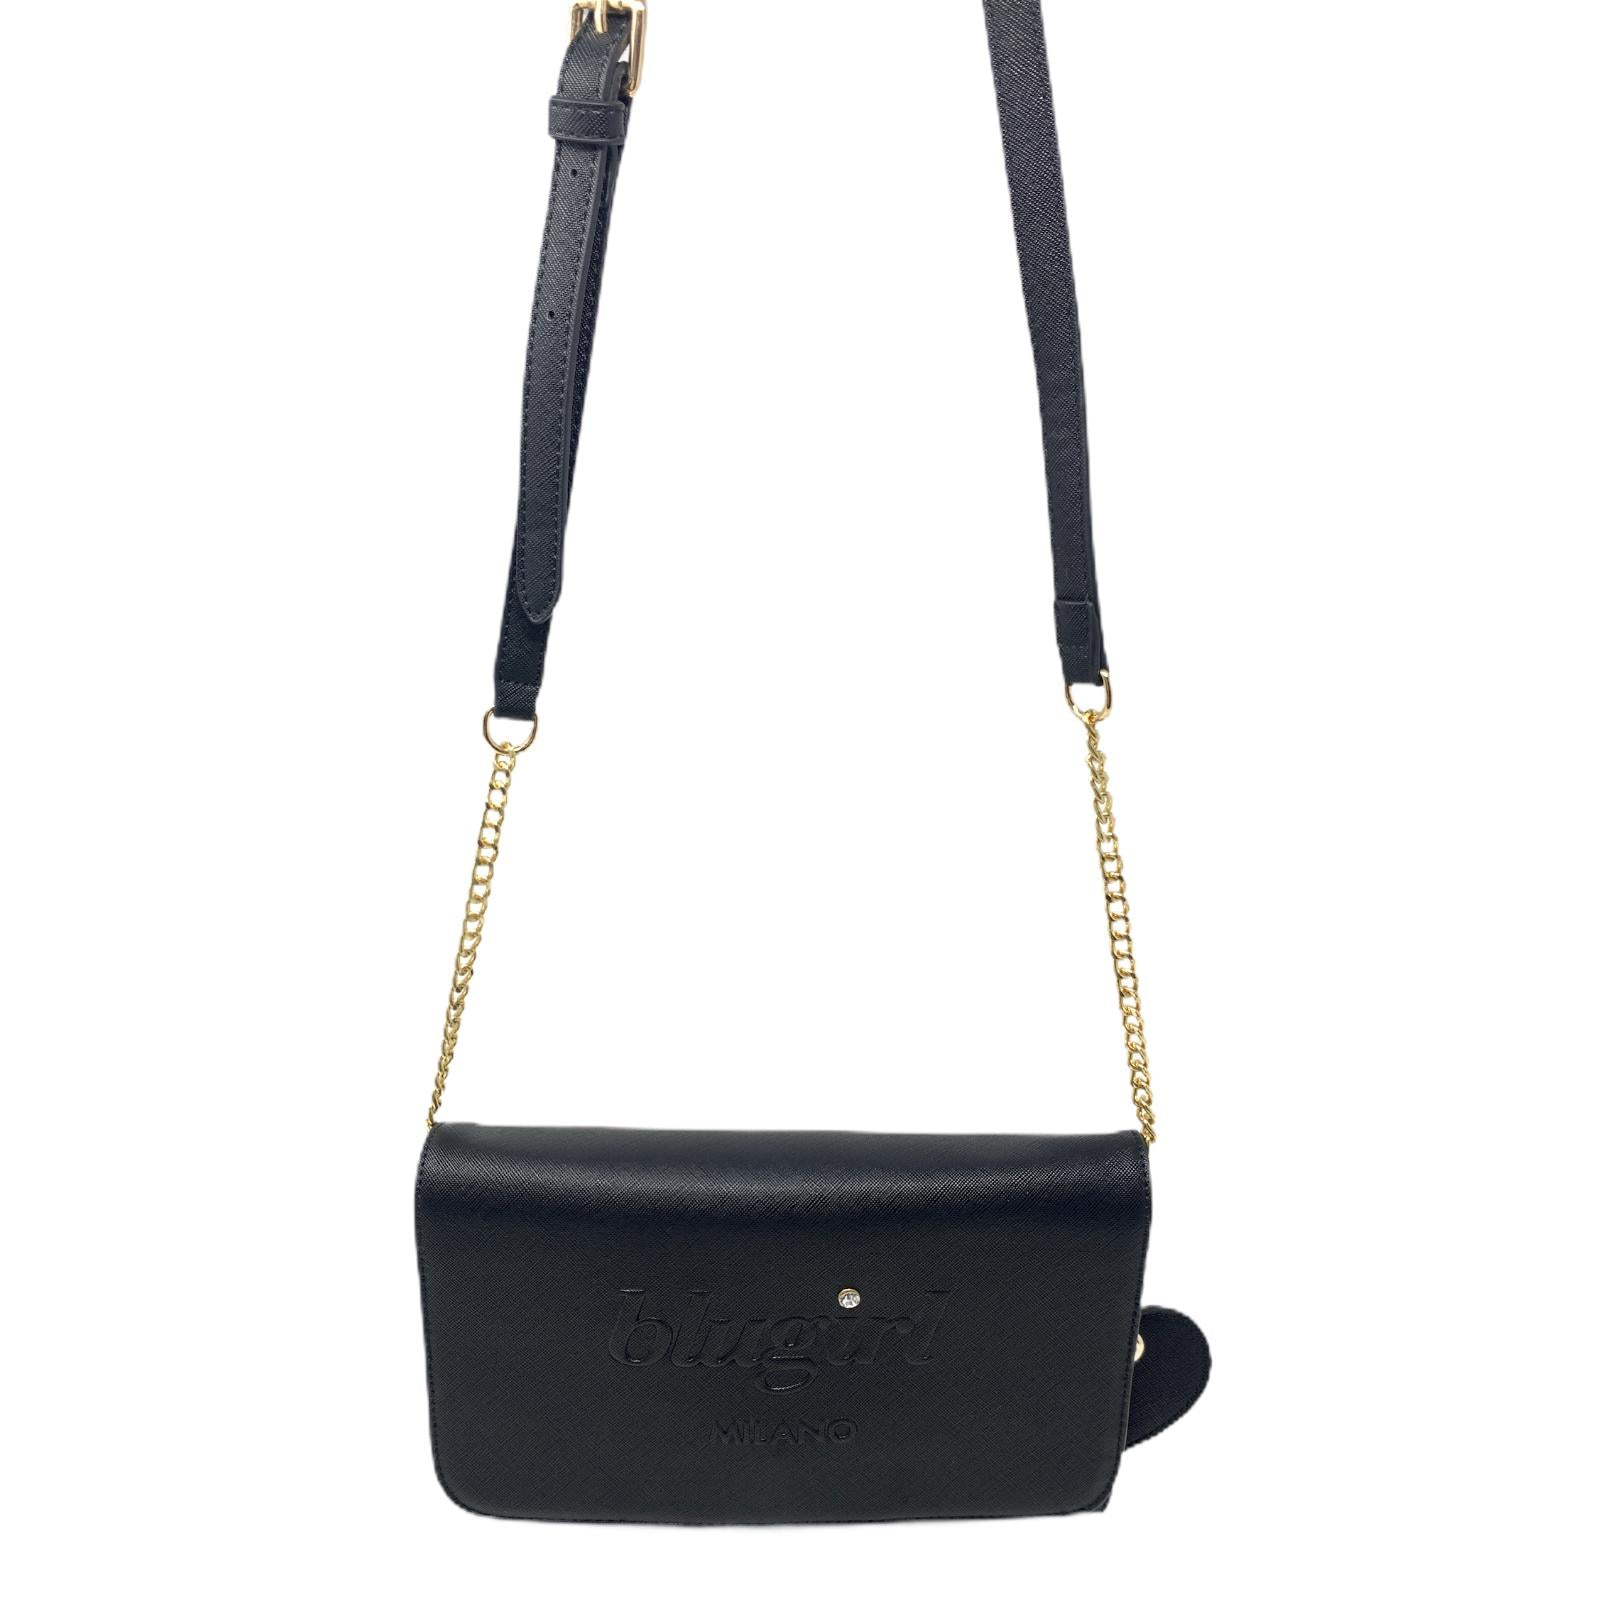 Blugirl Borsa Nera Bag Shopper Rigida Bag Mini Borsa Pochette